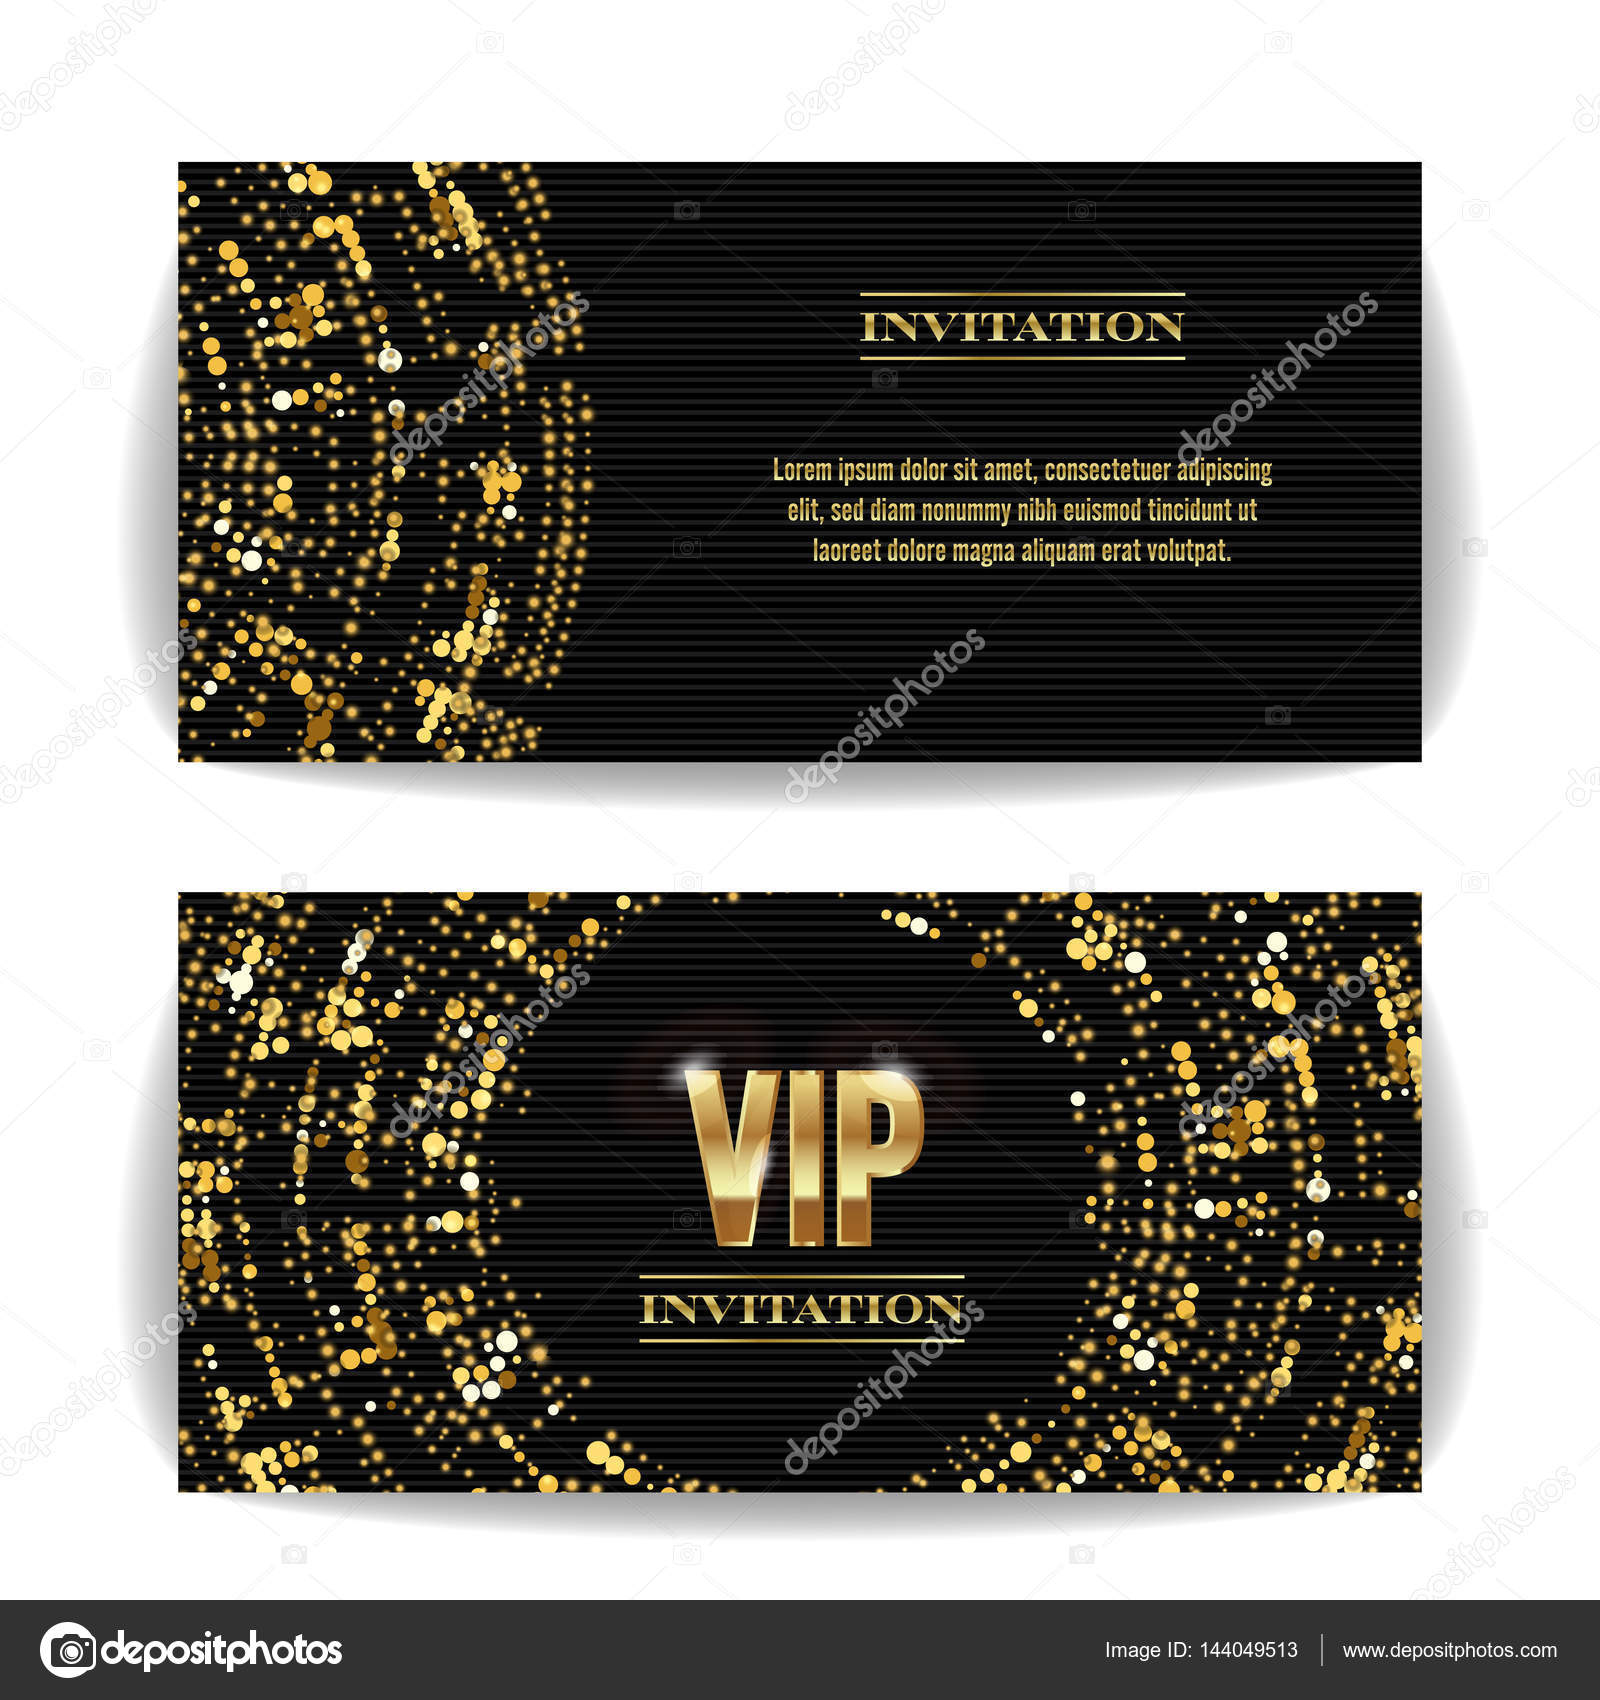 Vip invitation card vector party premium blank poster flyer vip invitation card vector party premium blank poster flyer black golden design template spiritdancerdesigns Image collections